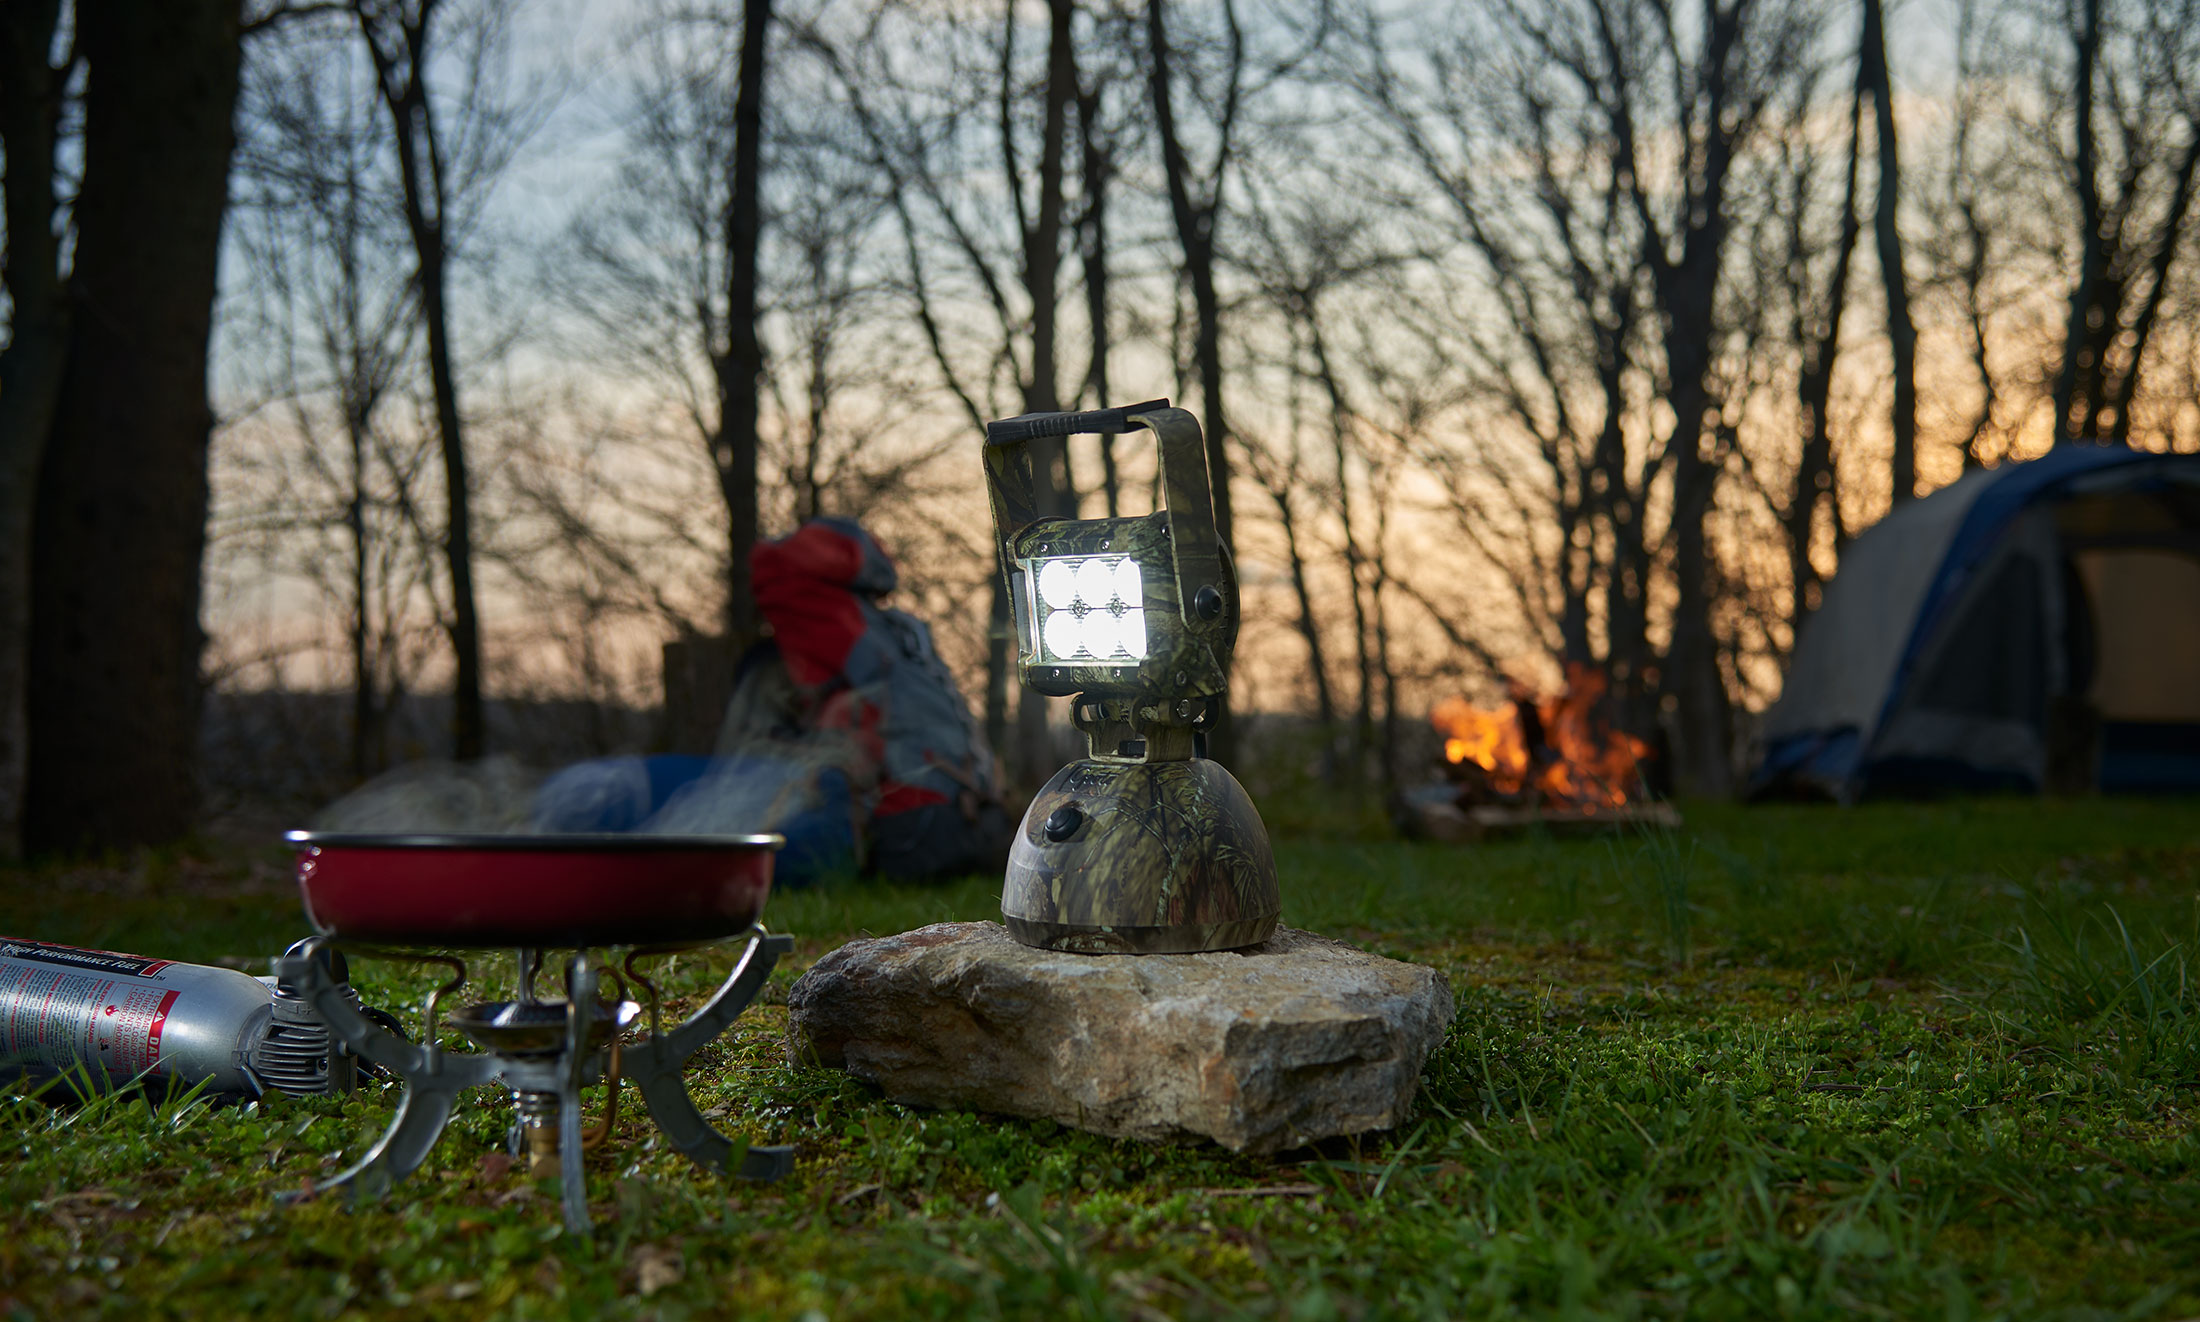 Camo LED Light sitting by a campfire